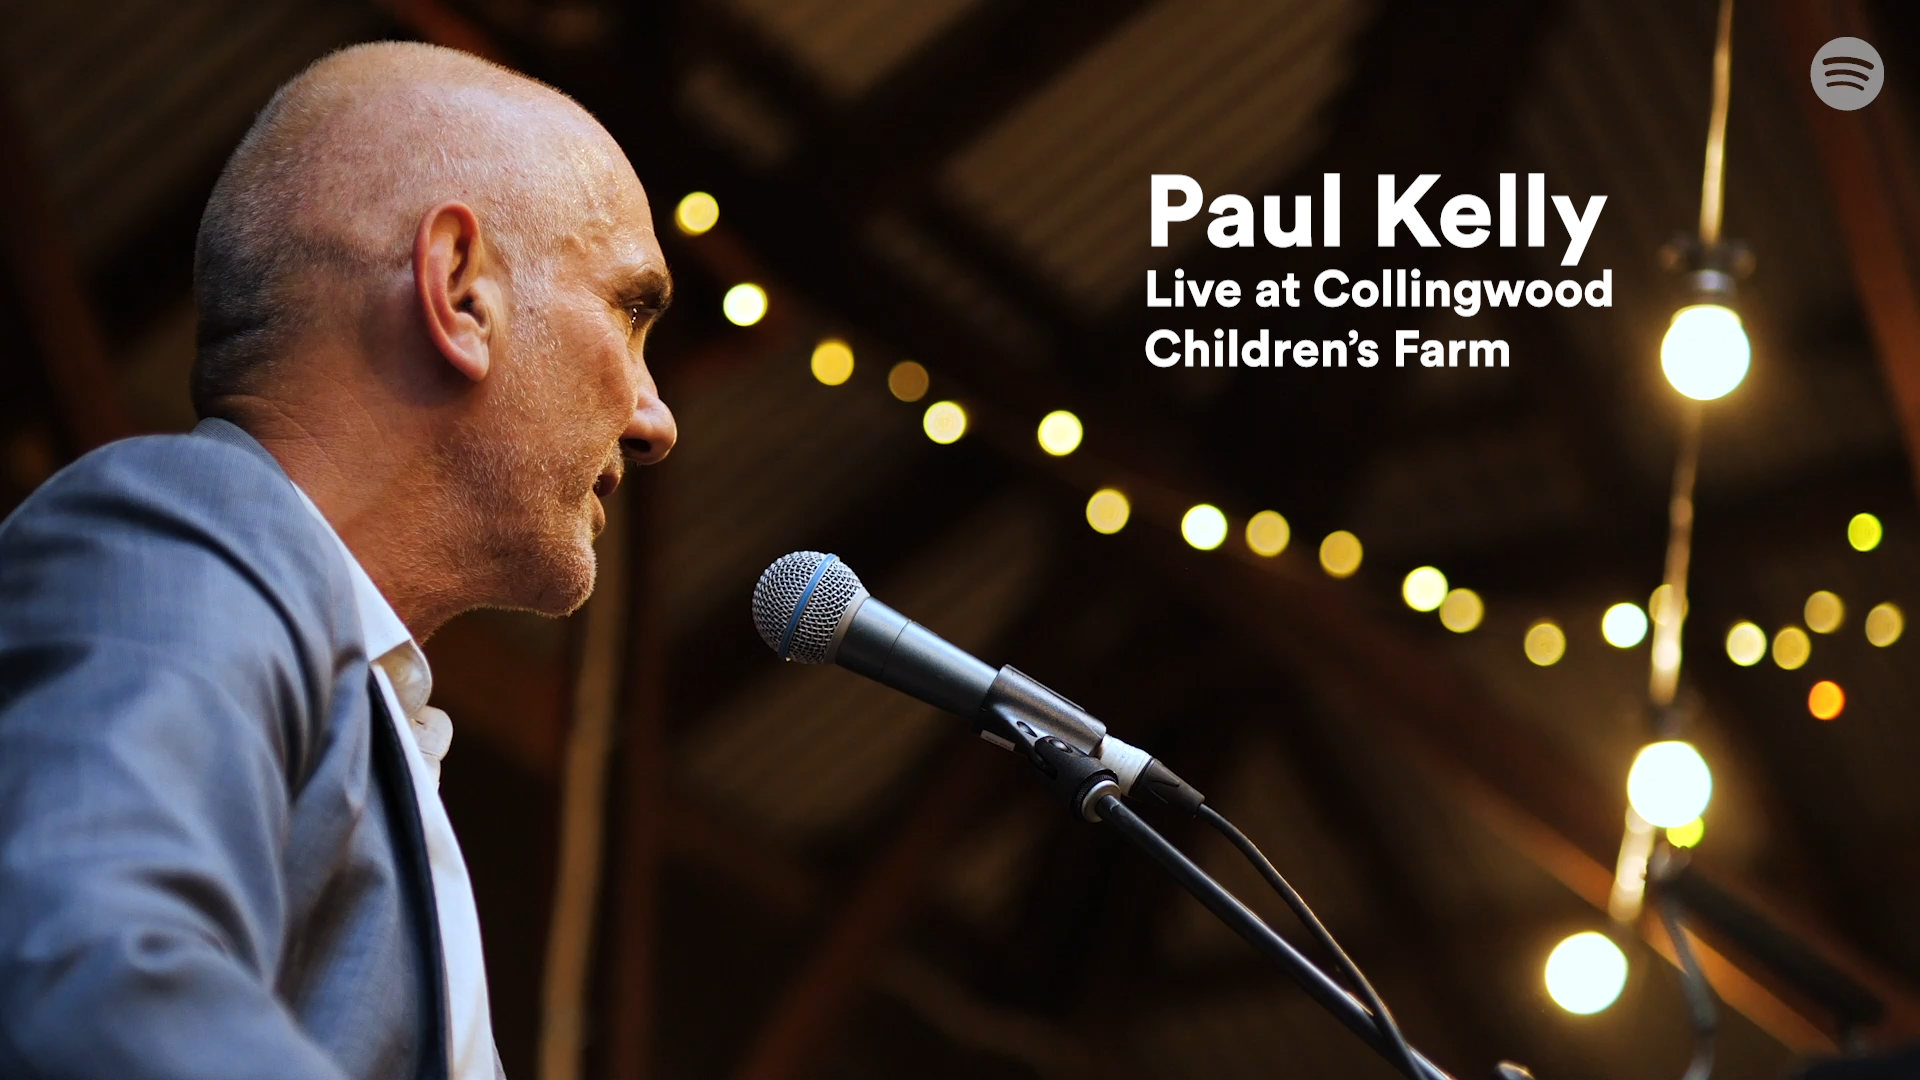 Paul Kelly: Live at Collingwood Children's Farm